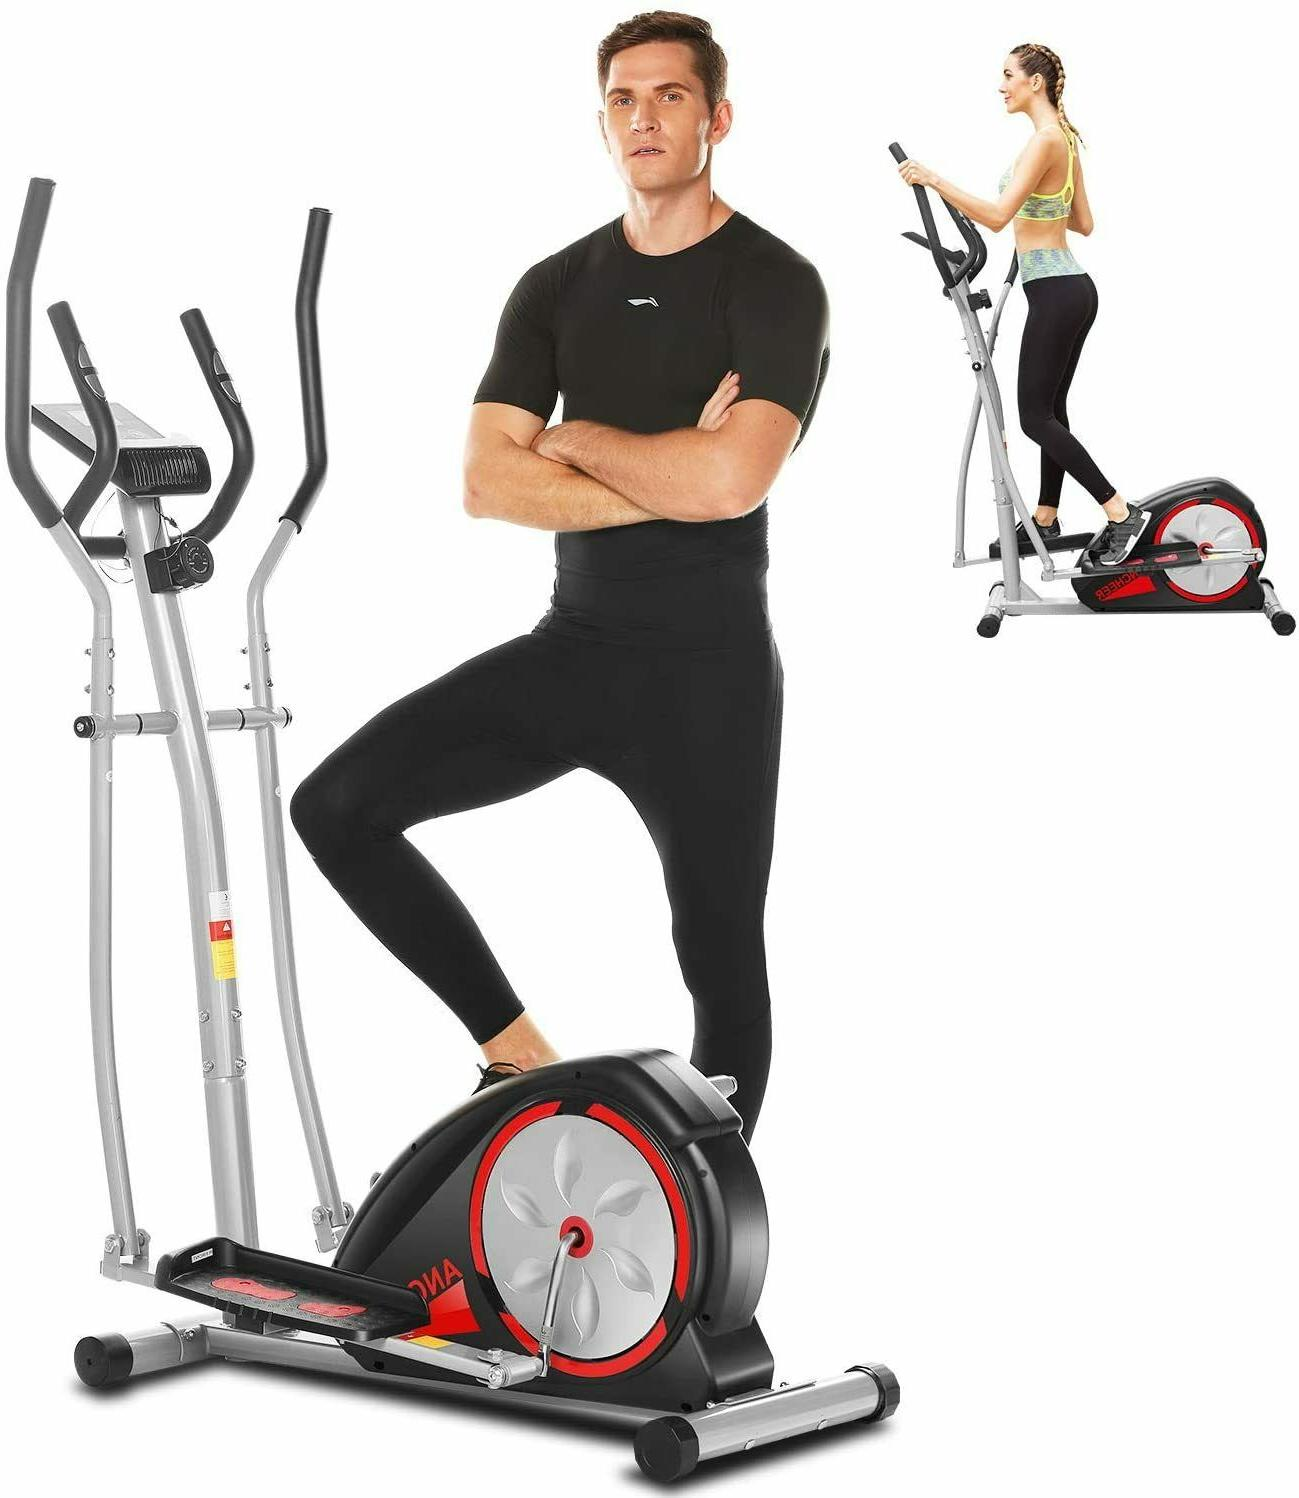 ANCHEER Elliptical Exercise Fitness Training Home Cardio Mute&